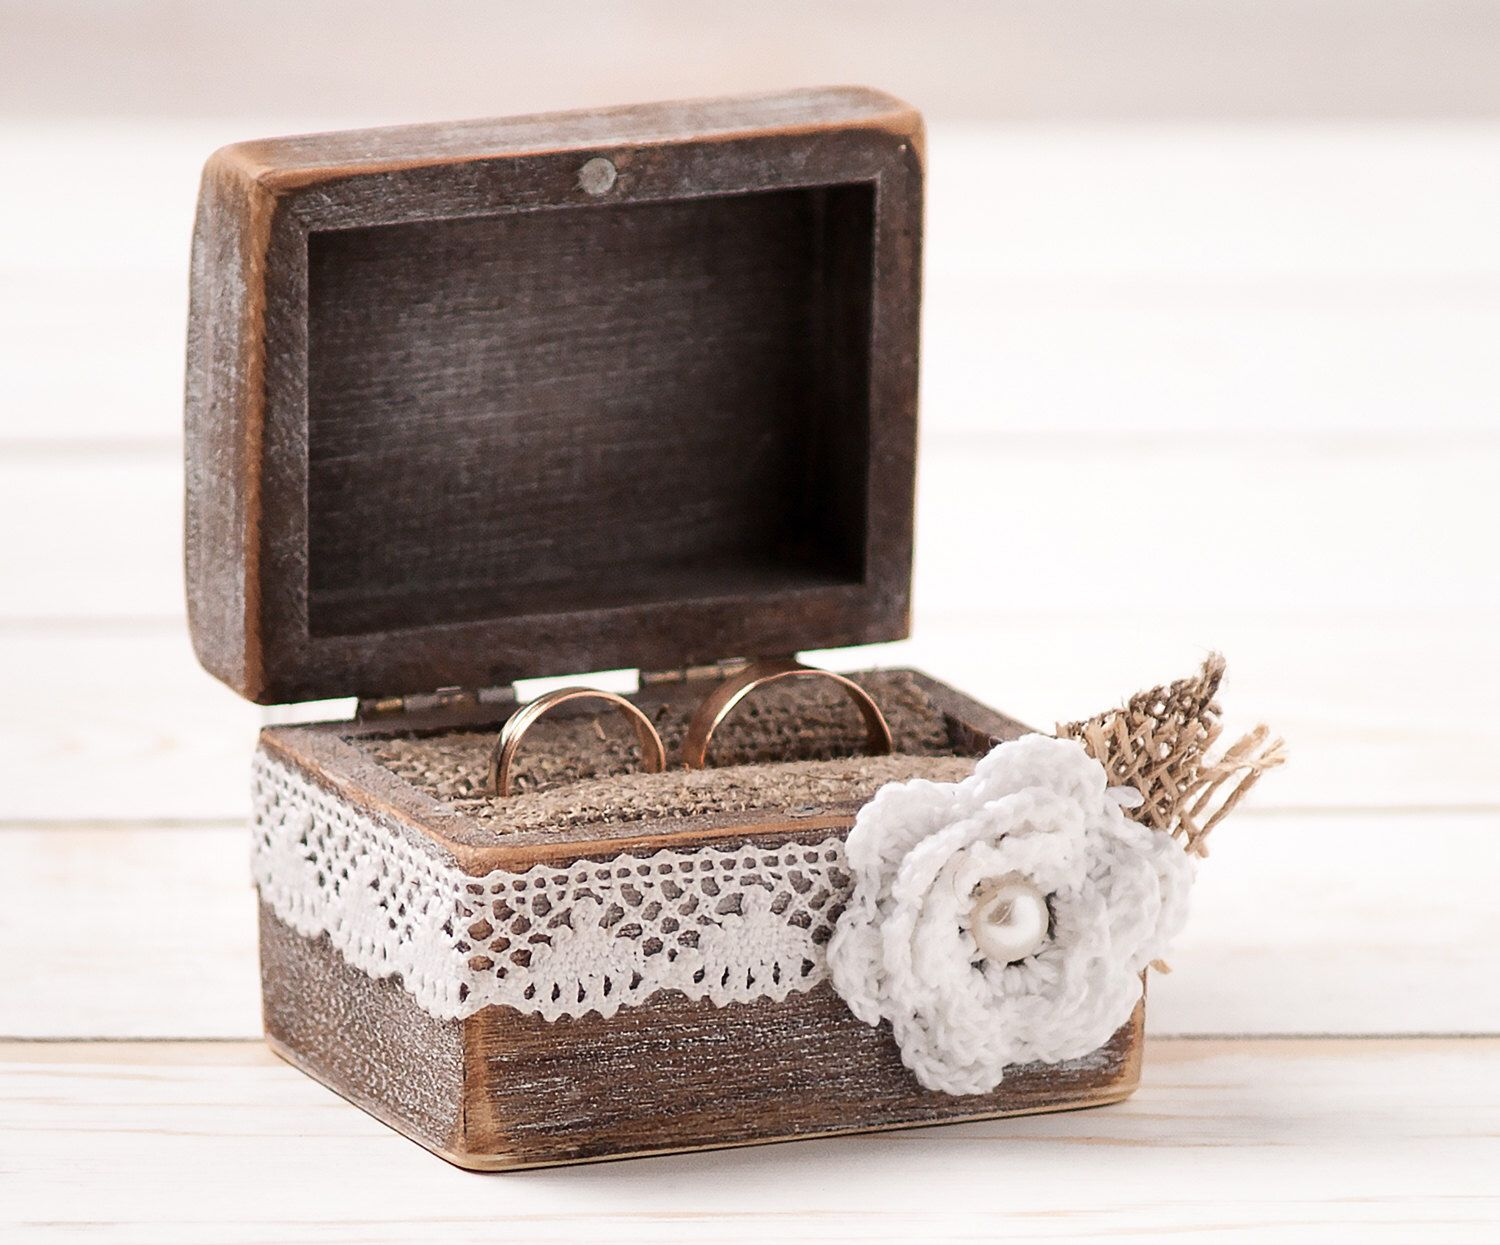 Engagement ring box christmas ornament - Wedding Ring Box Ring Bearer Pillow Box With White Fabric Flower Wooden Engagement Ring Box Burlap And Lace Love Rustic Unique